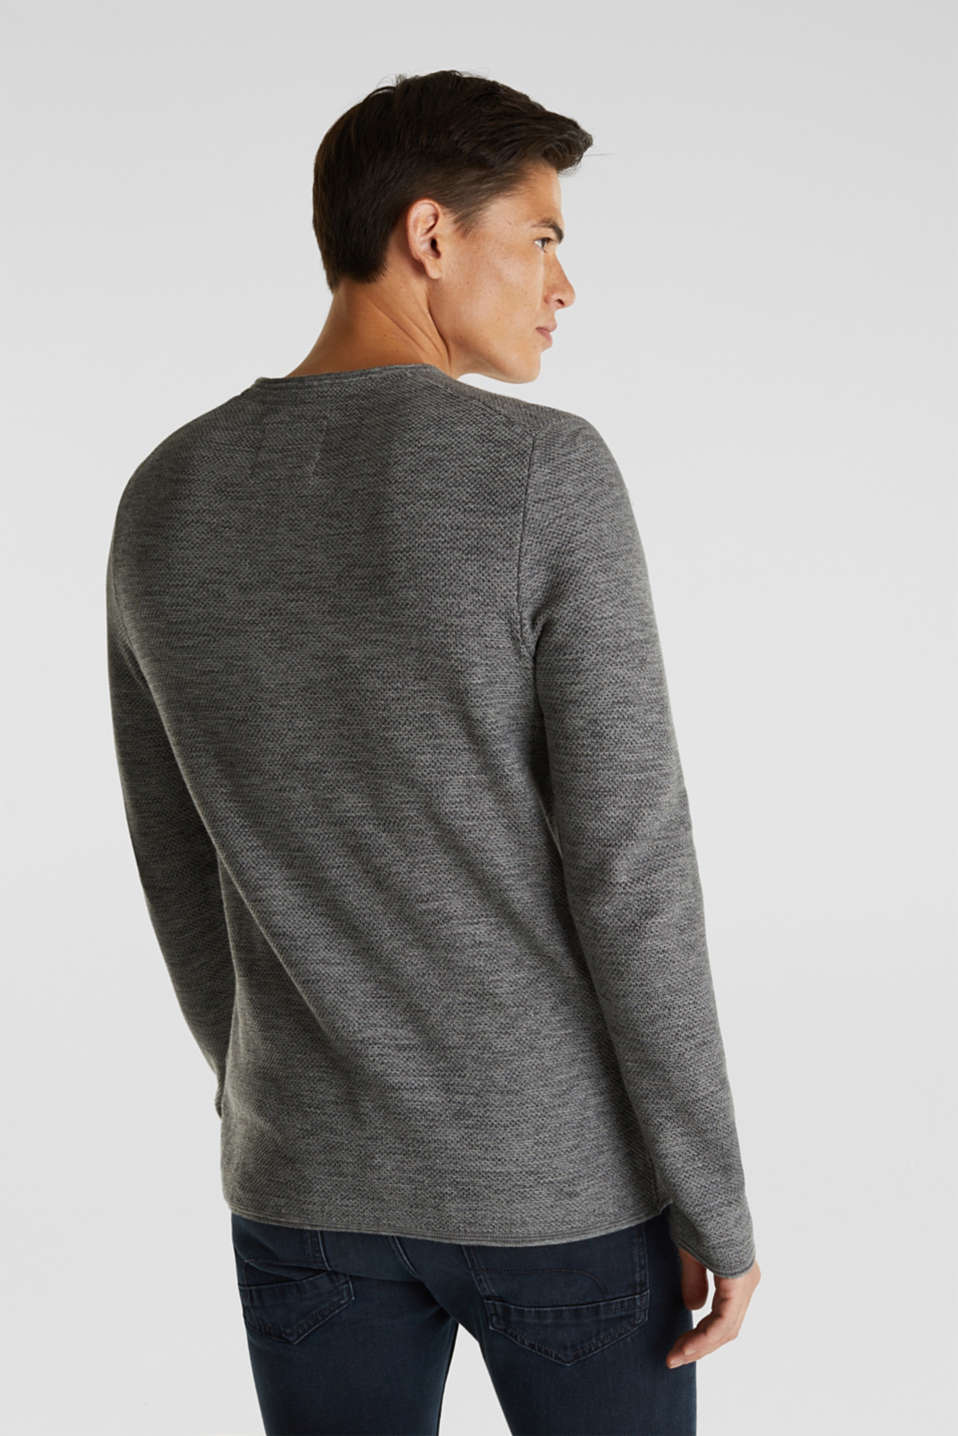 Textured jumper made of 100% cotton, MEDIUM GREY, detail image number 3